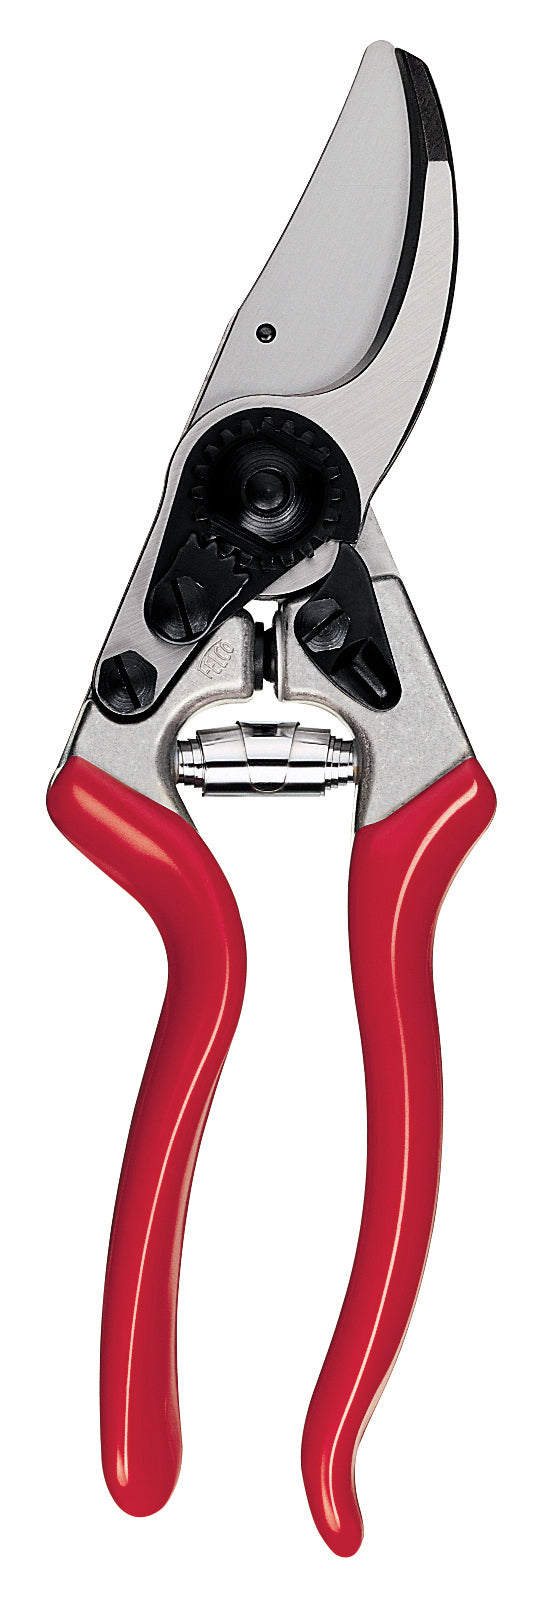 Felco 9 Pruning Shears